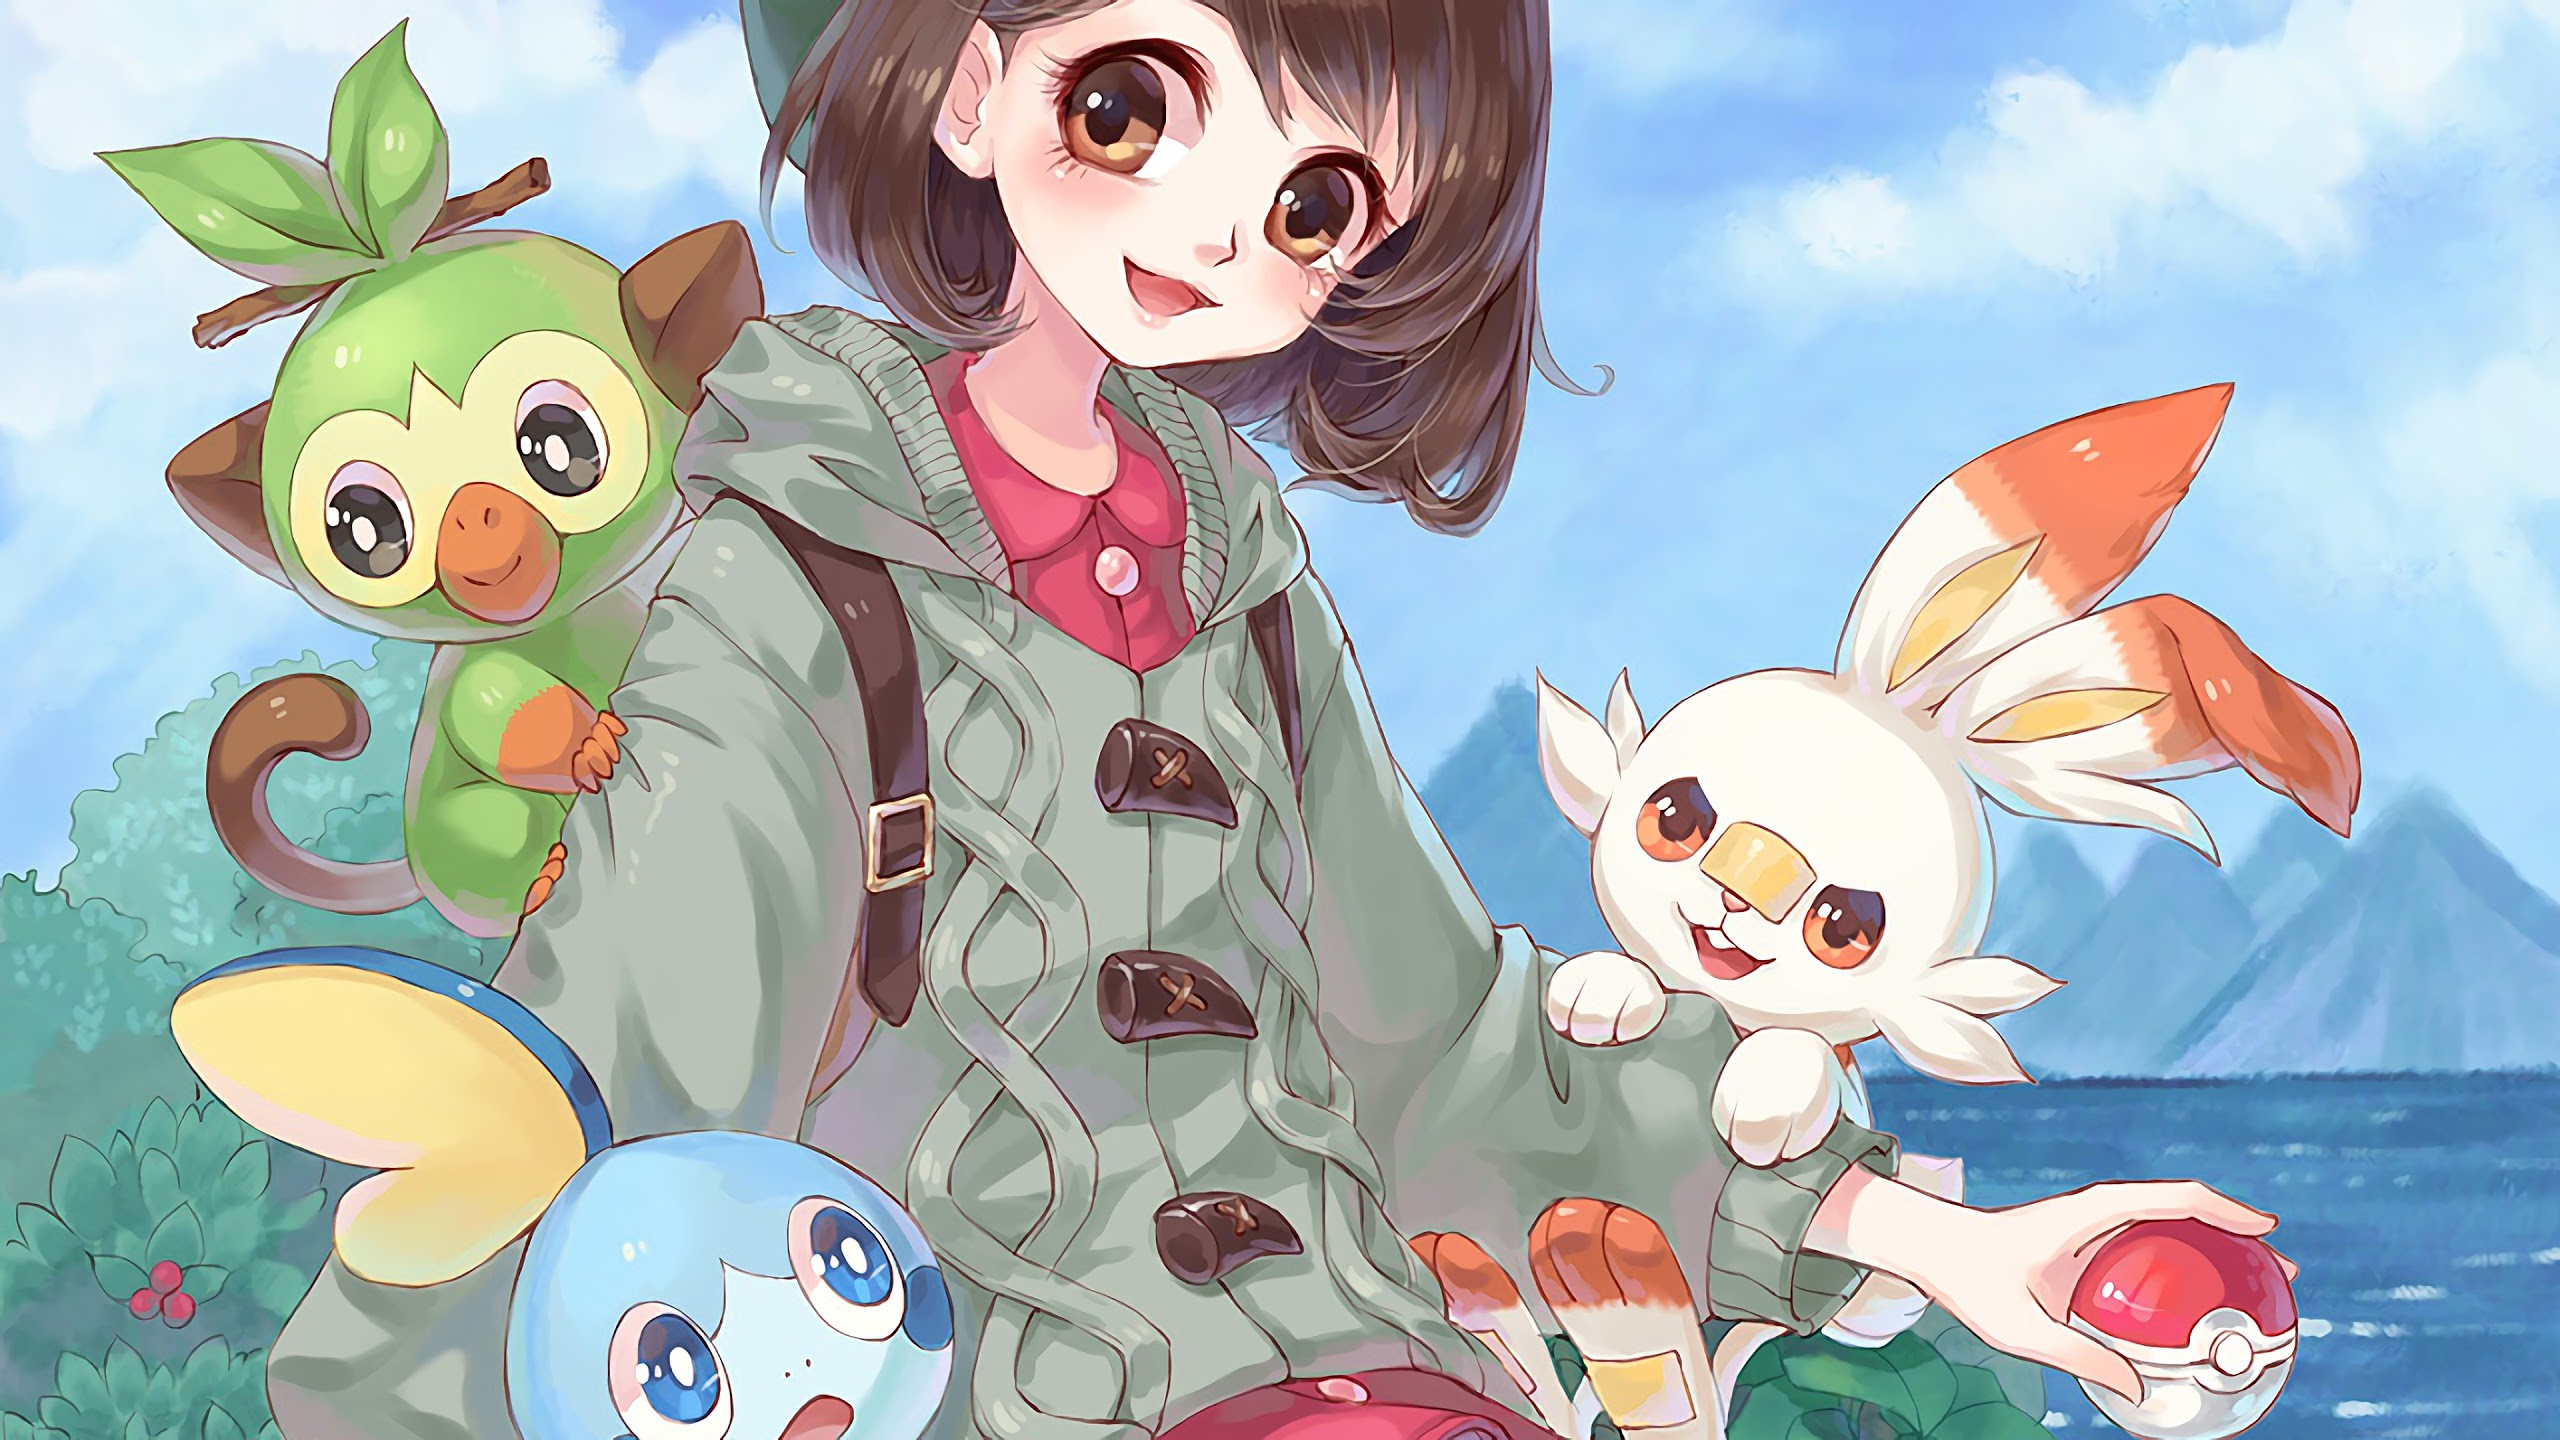 Pokemon Sword And Shield Scorbunny Sobble Grookey Pokemon Sword And Shield 2560x1440 Wallpaper Teahub Io Pokemon sw & sh grookey spawn locations where to find and catch, moves you can learn, evolutions you can find and catch grookey using our guide below on how to obtain this pokemon. pokemon sword and shield scorbunny